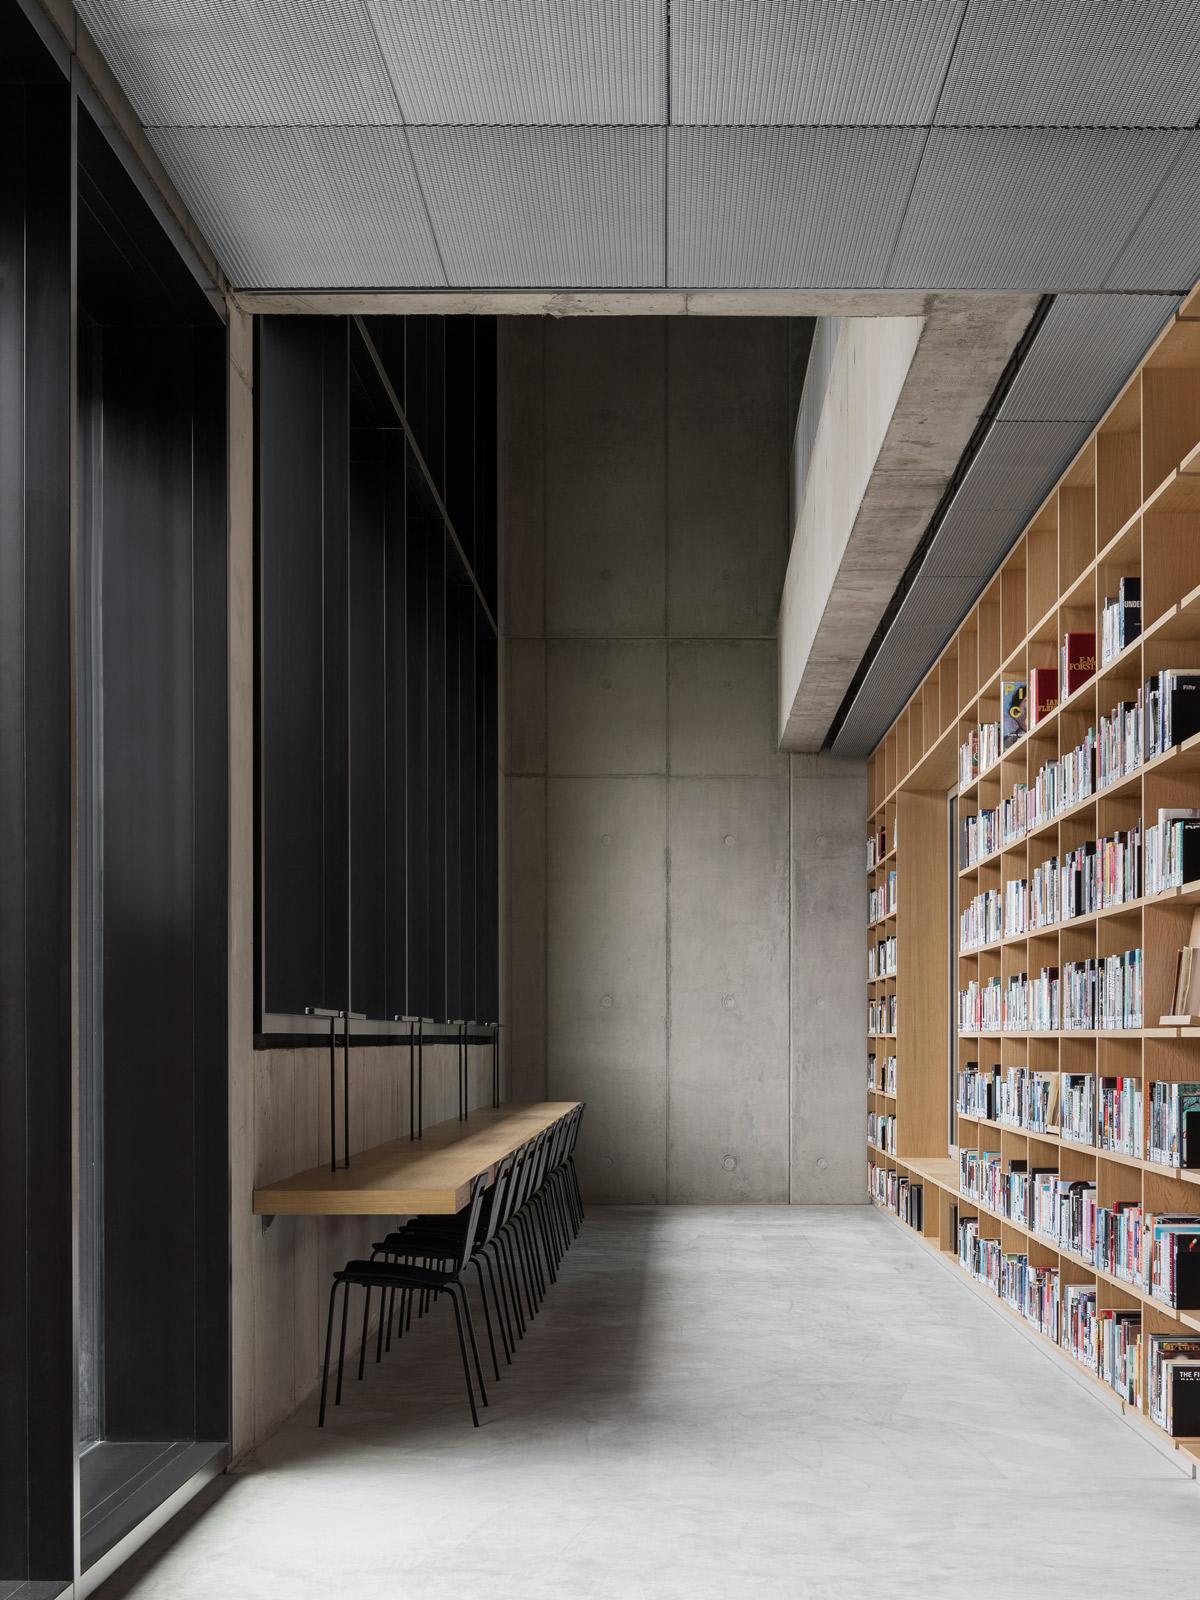 Inside the Utopia library, designed by KAAN Architecten